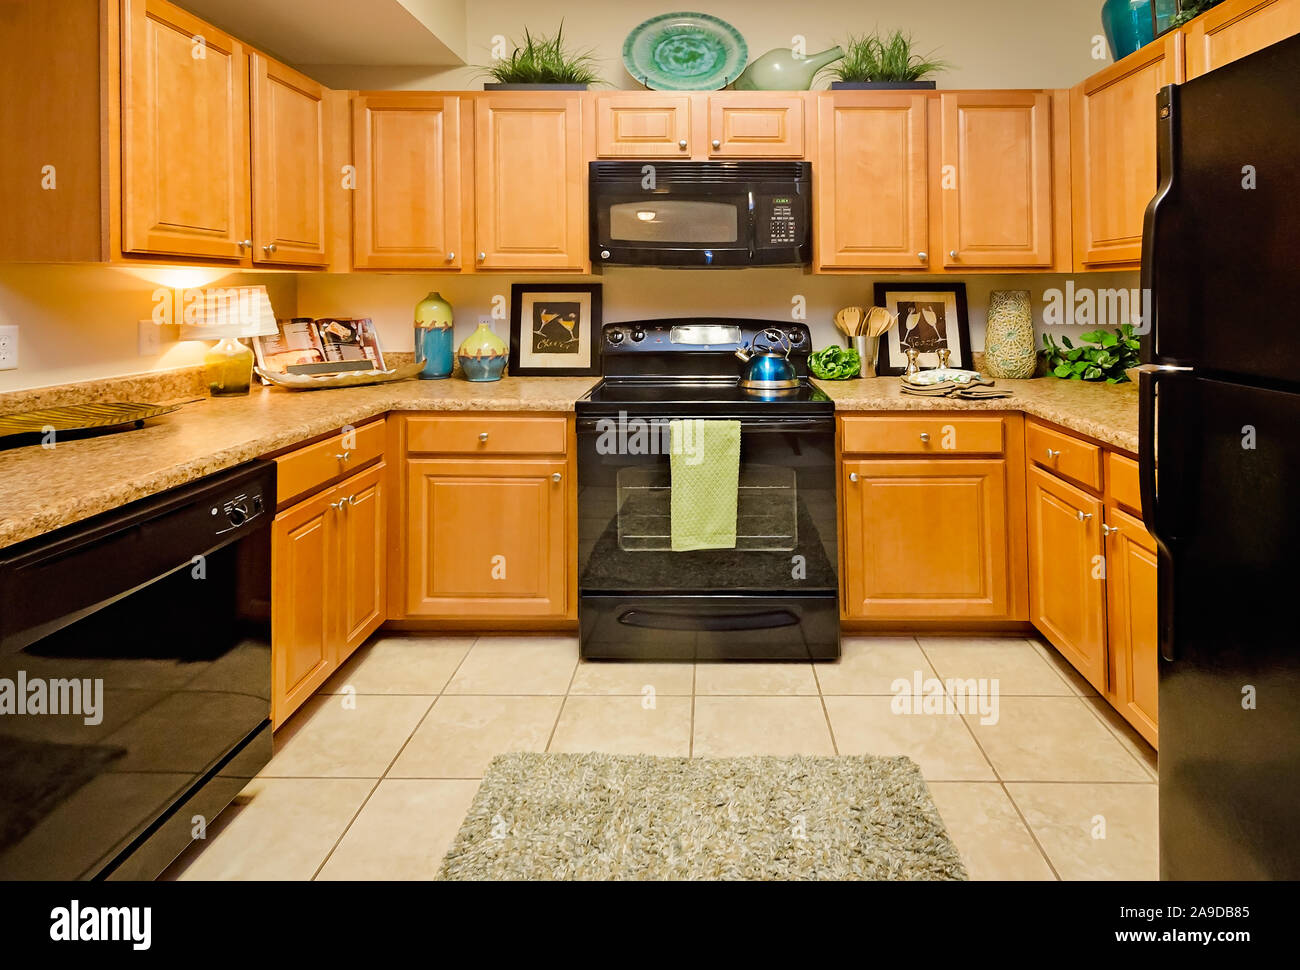 The Kitchen Features Granite Countertops Electric Appliances And Wood Cabinets At Cypress Cove Apartment Homes In Mobile Alabama Stock Photo Alamy